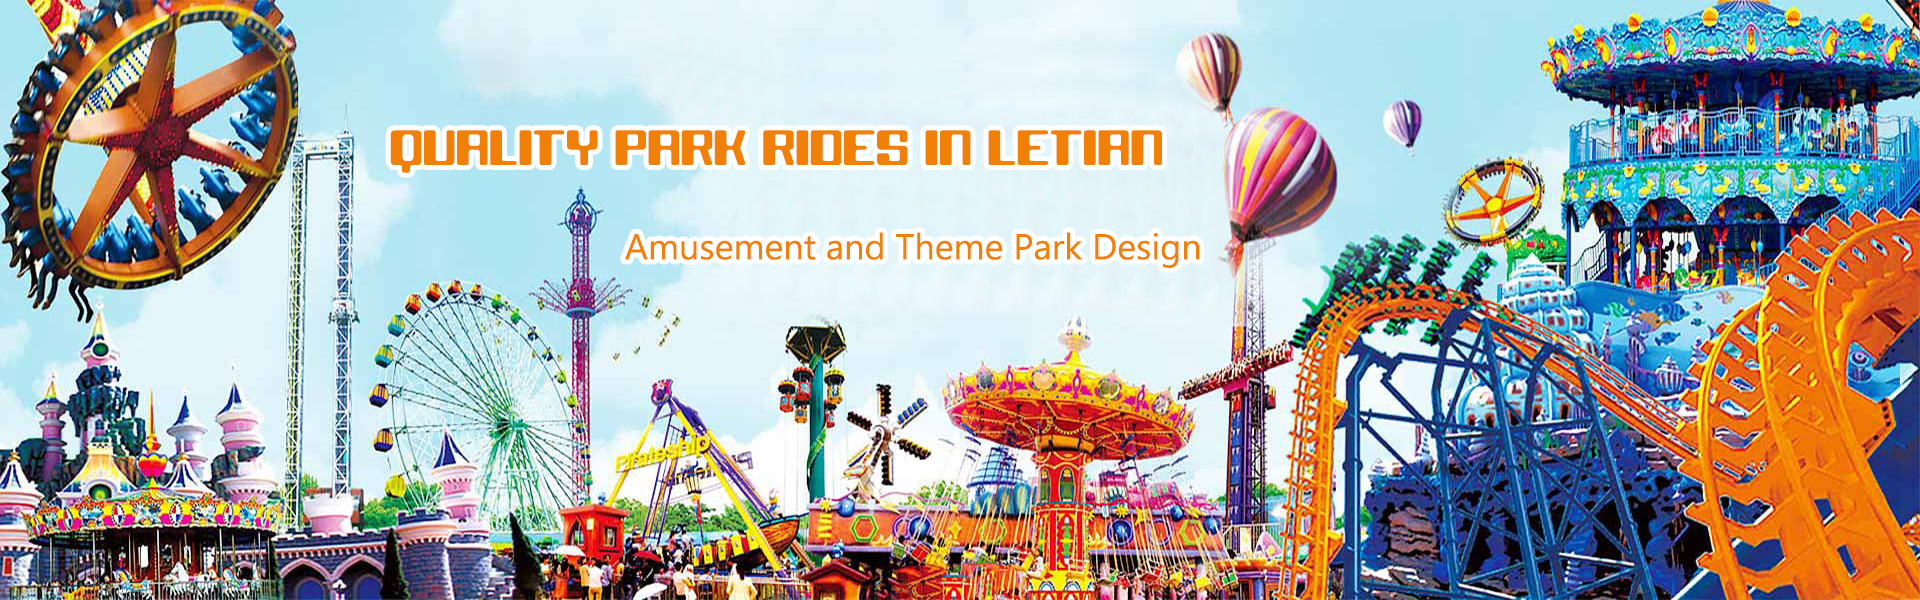 high quality park rides in LeTian, amusement and theme park design